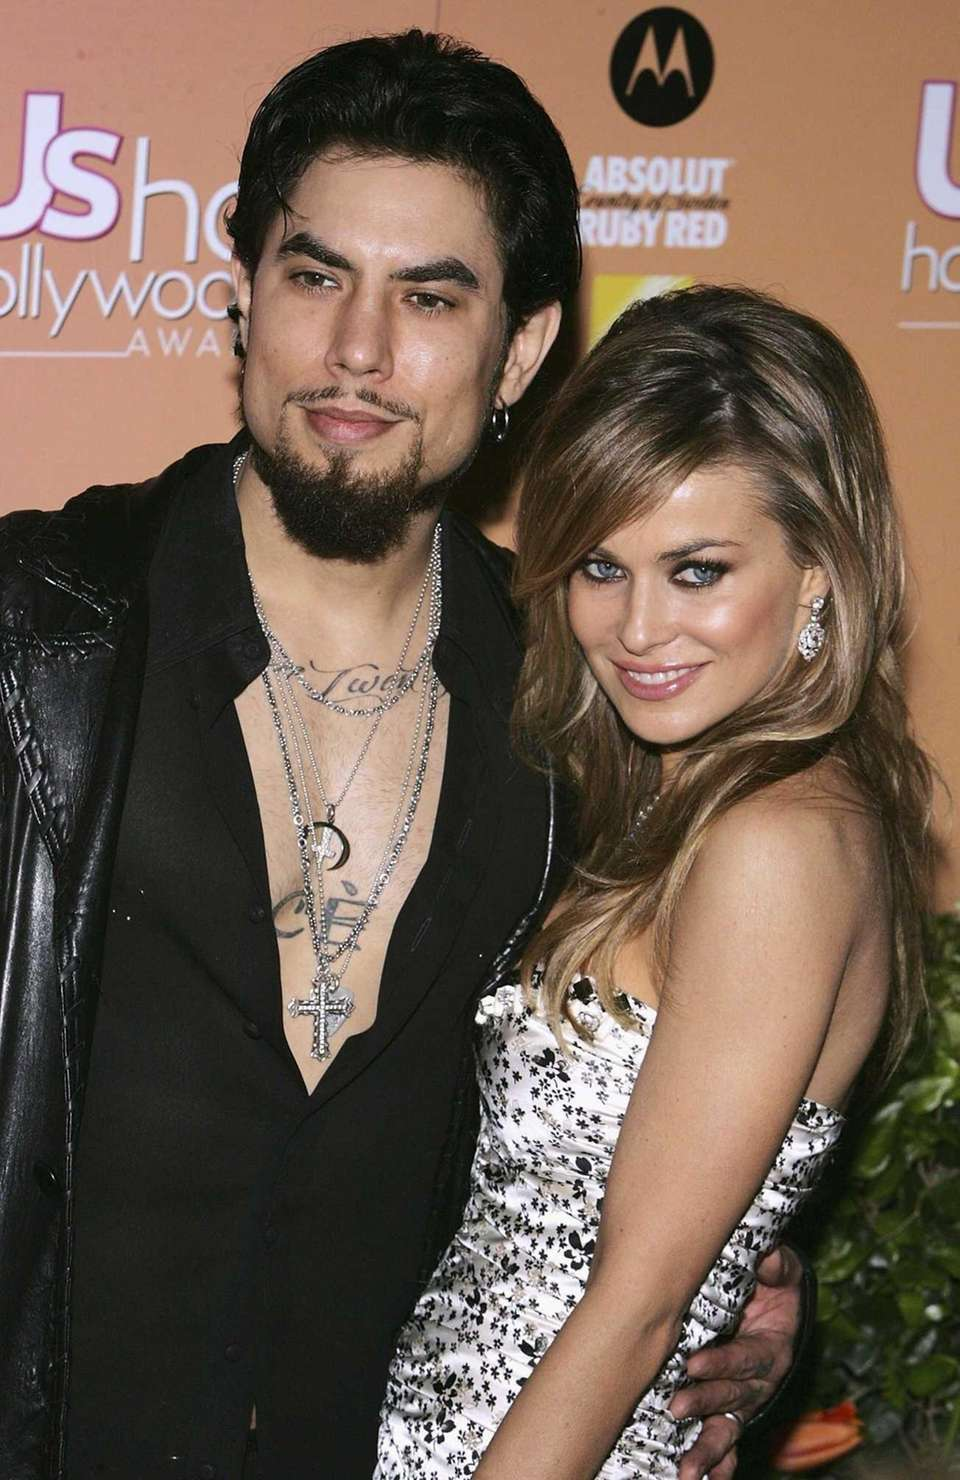 Actress Carmen Electra and rocker Dave Navarro first